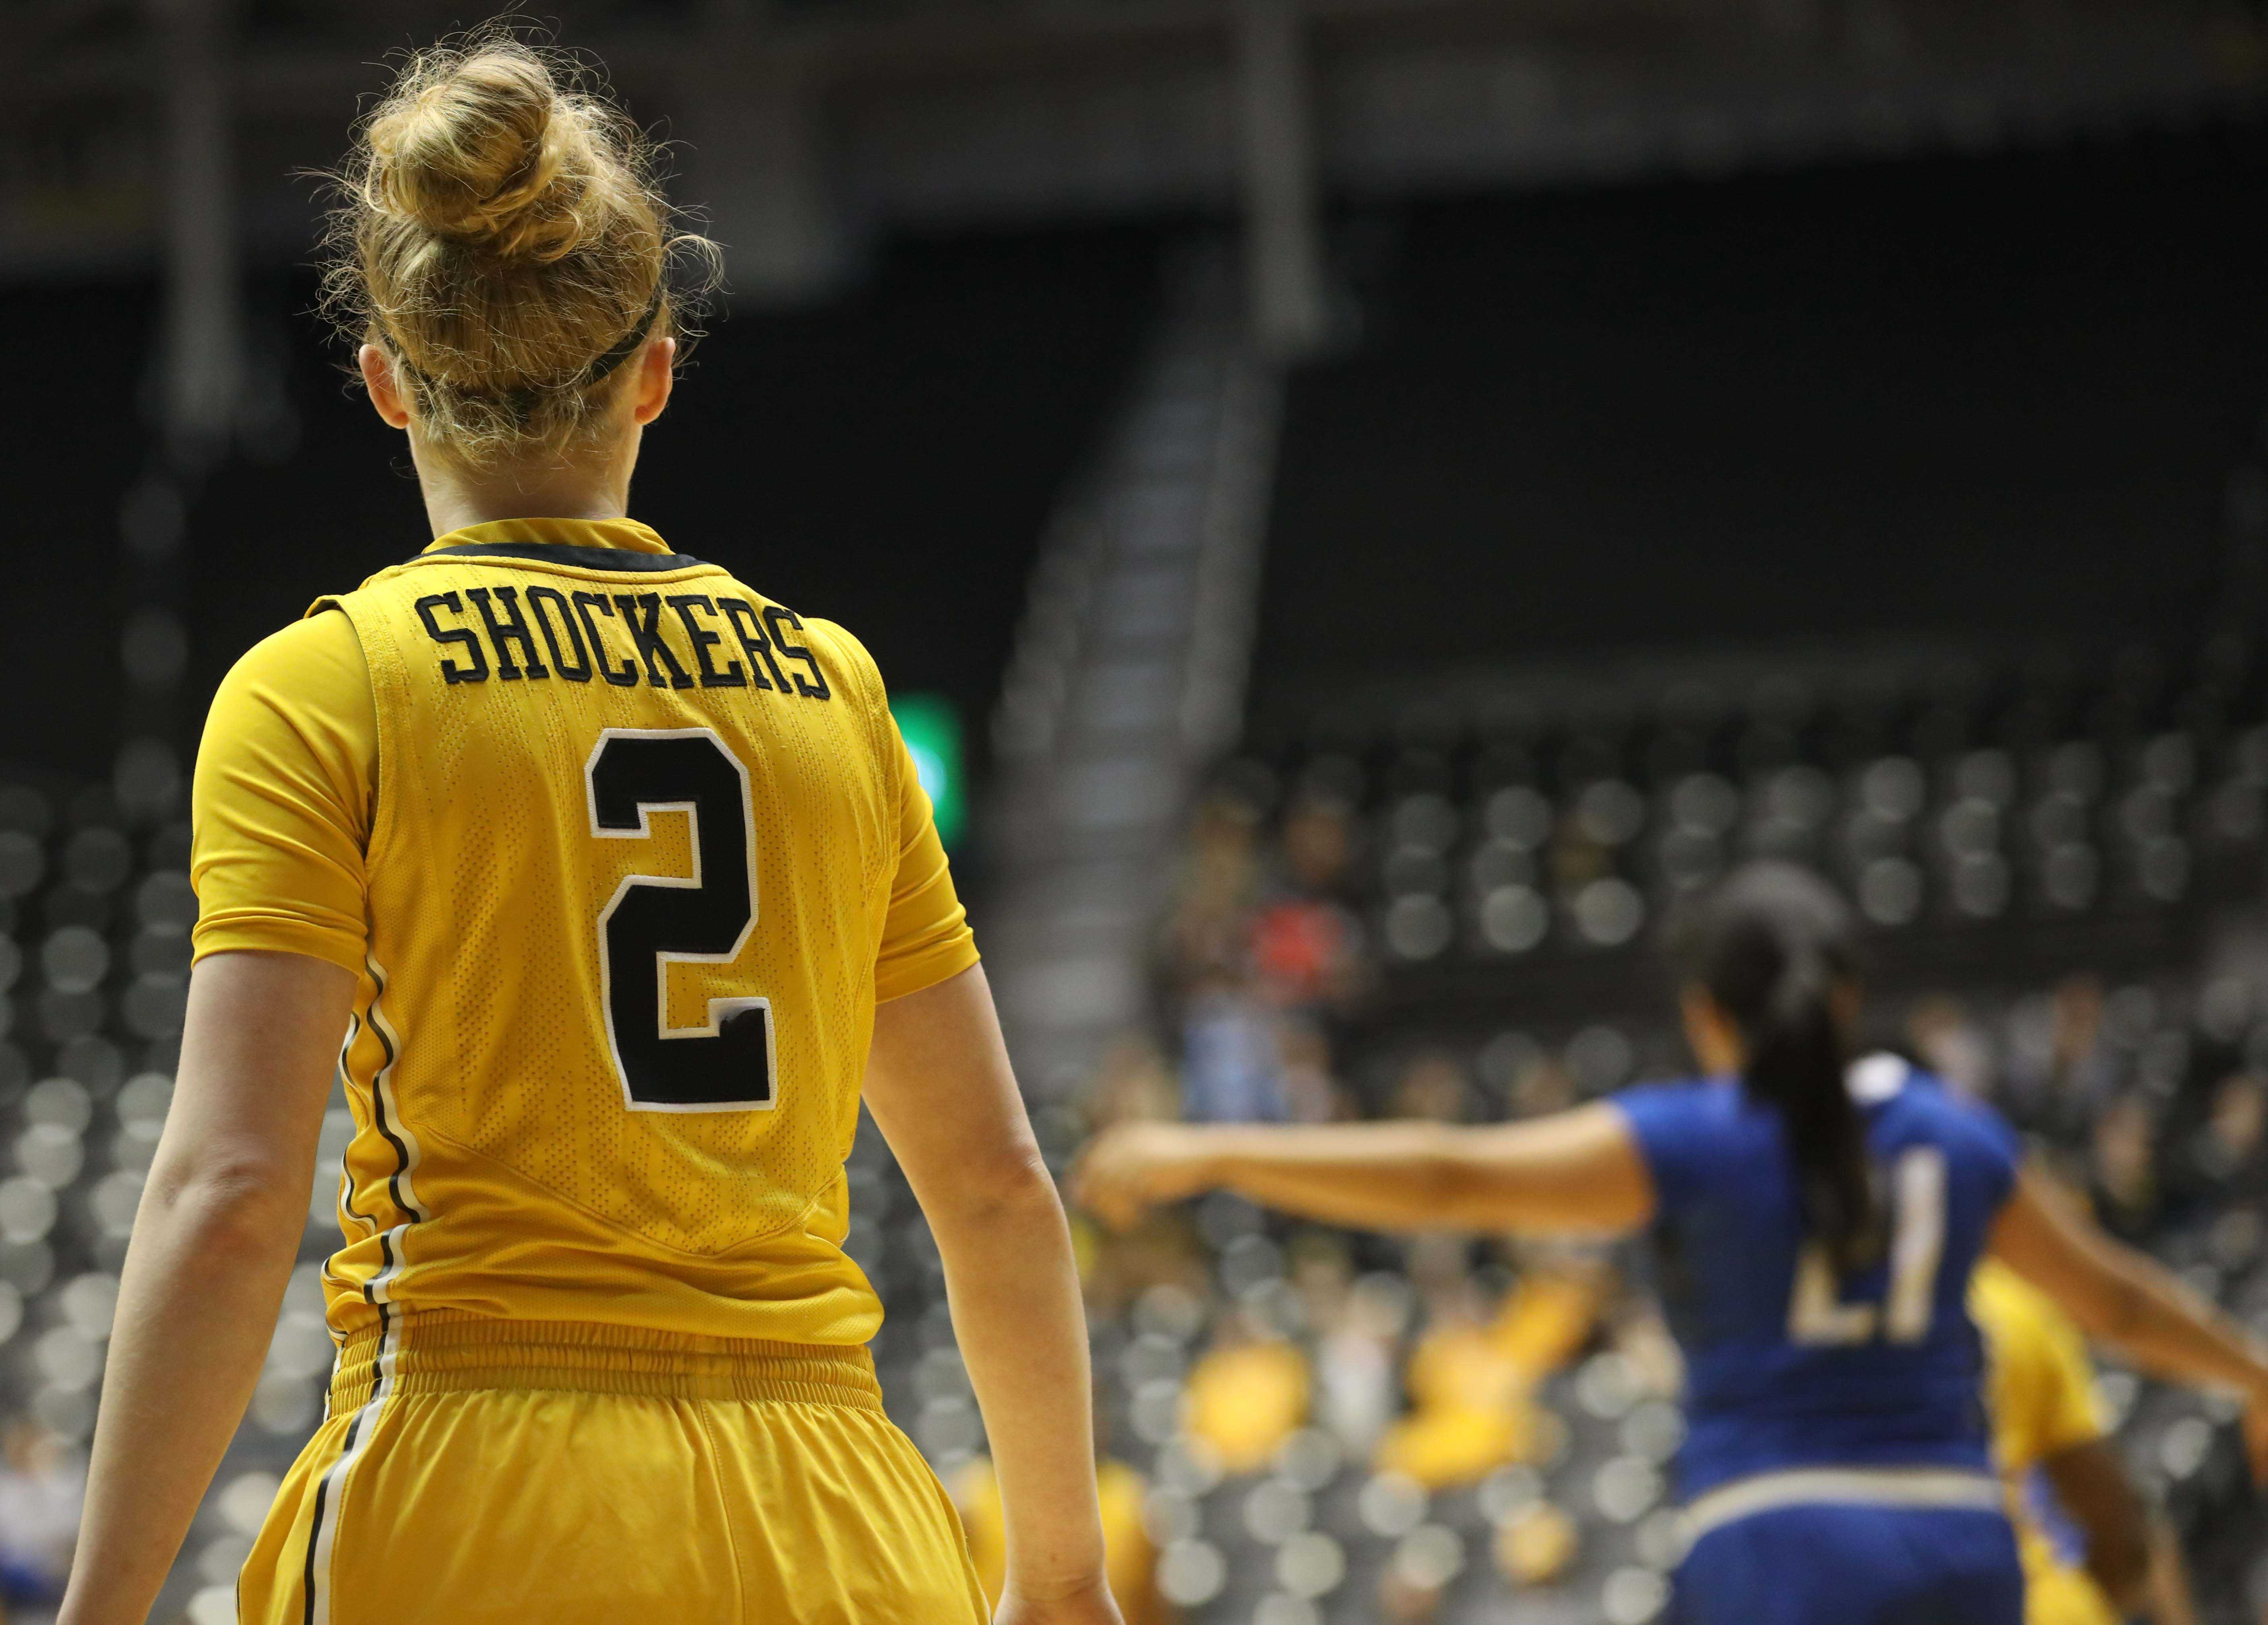 Wichita State senior Hannah Mortimer (2) looks towards her team Sunday afternoon in Charles Koch Arena. Mortimer is an outgoing senior and was honored in a ceremony after the game. (Feb. 26, 2017)